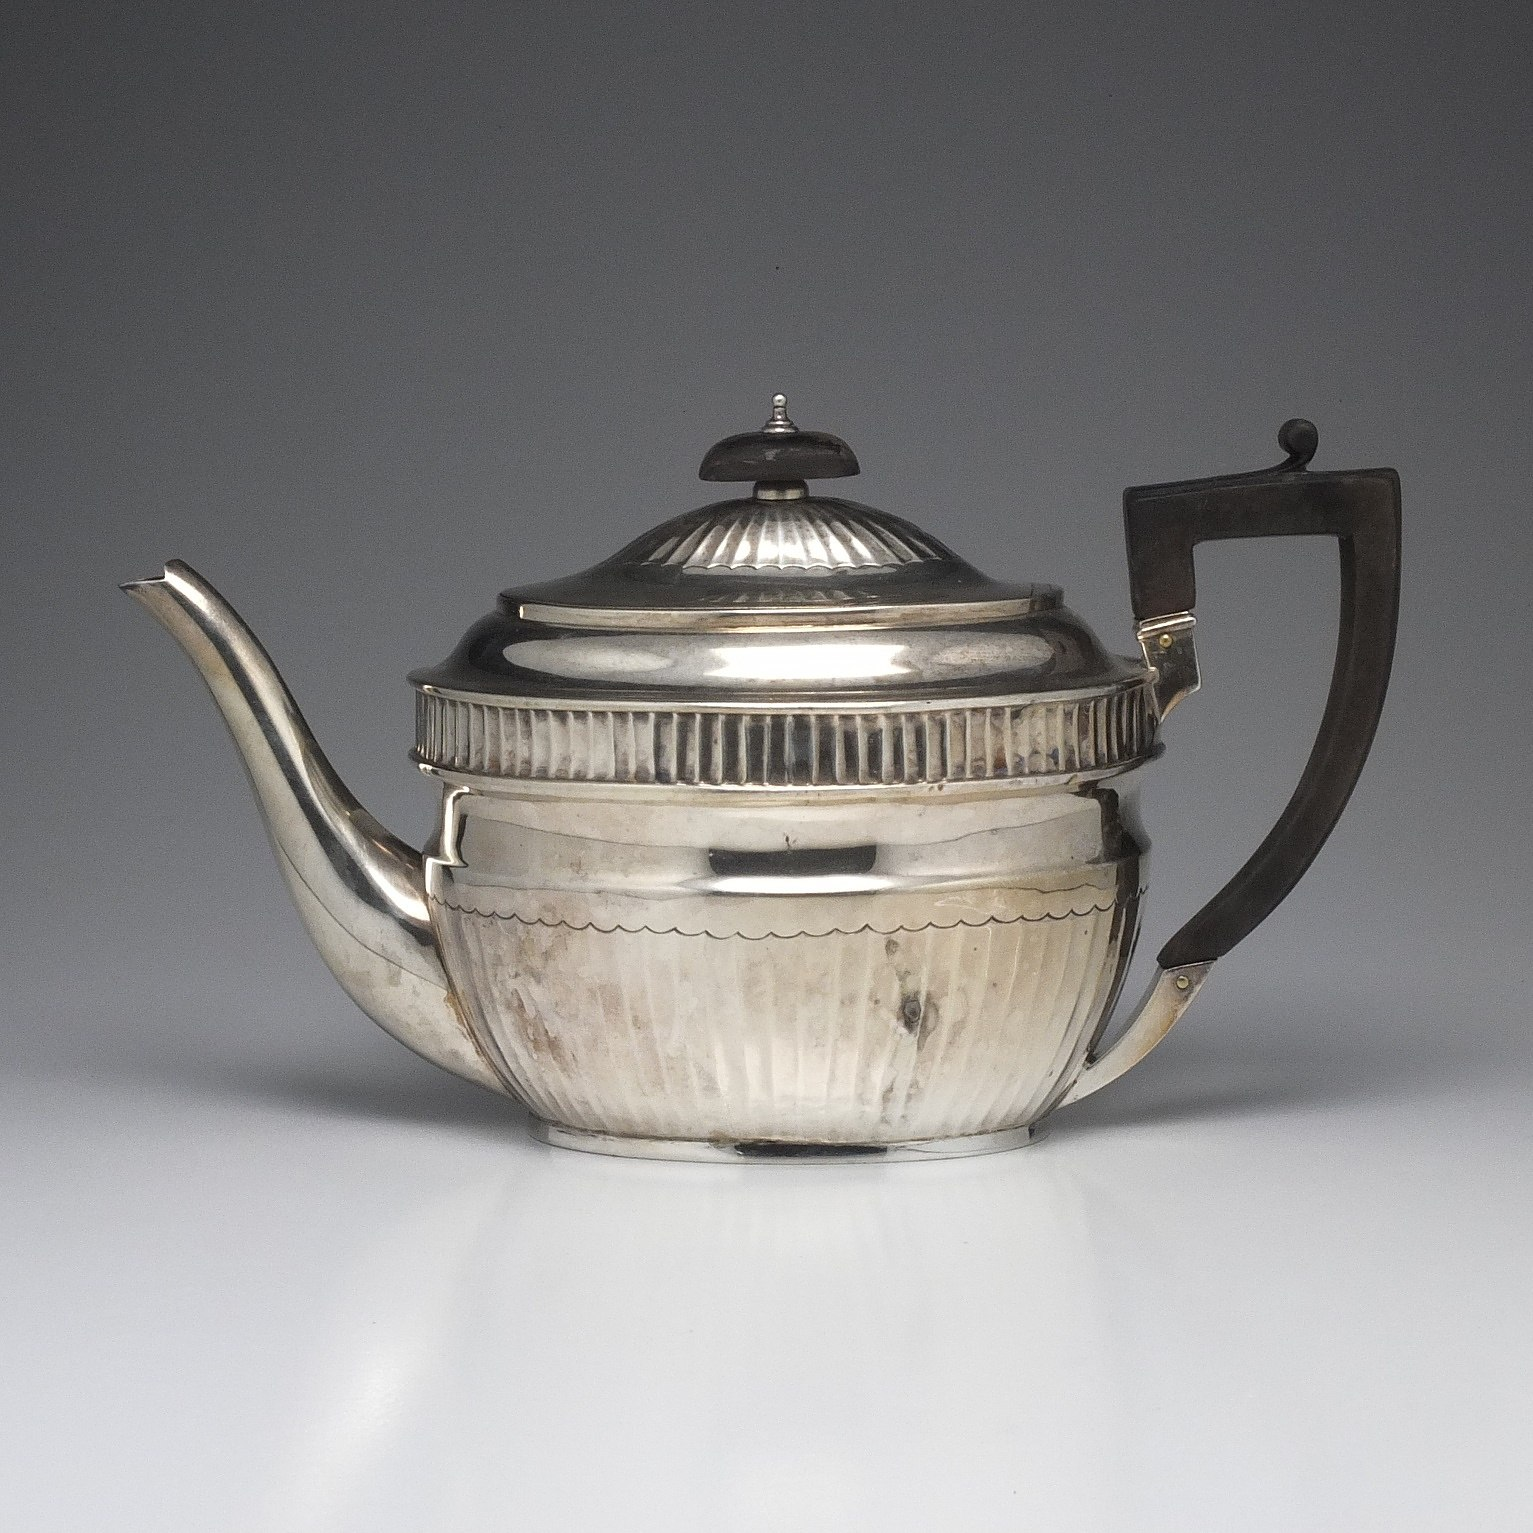 'George III Sterling Silver Teapot Abstinando King London 1804'